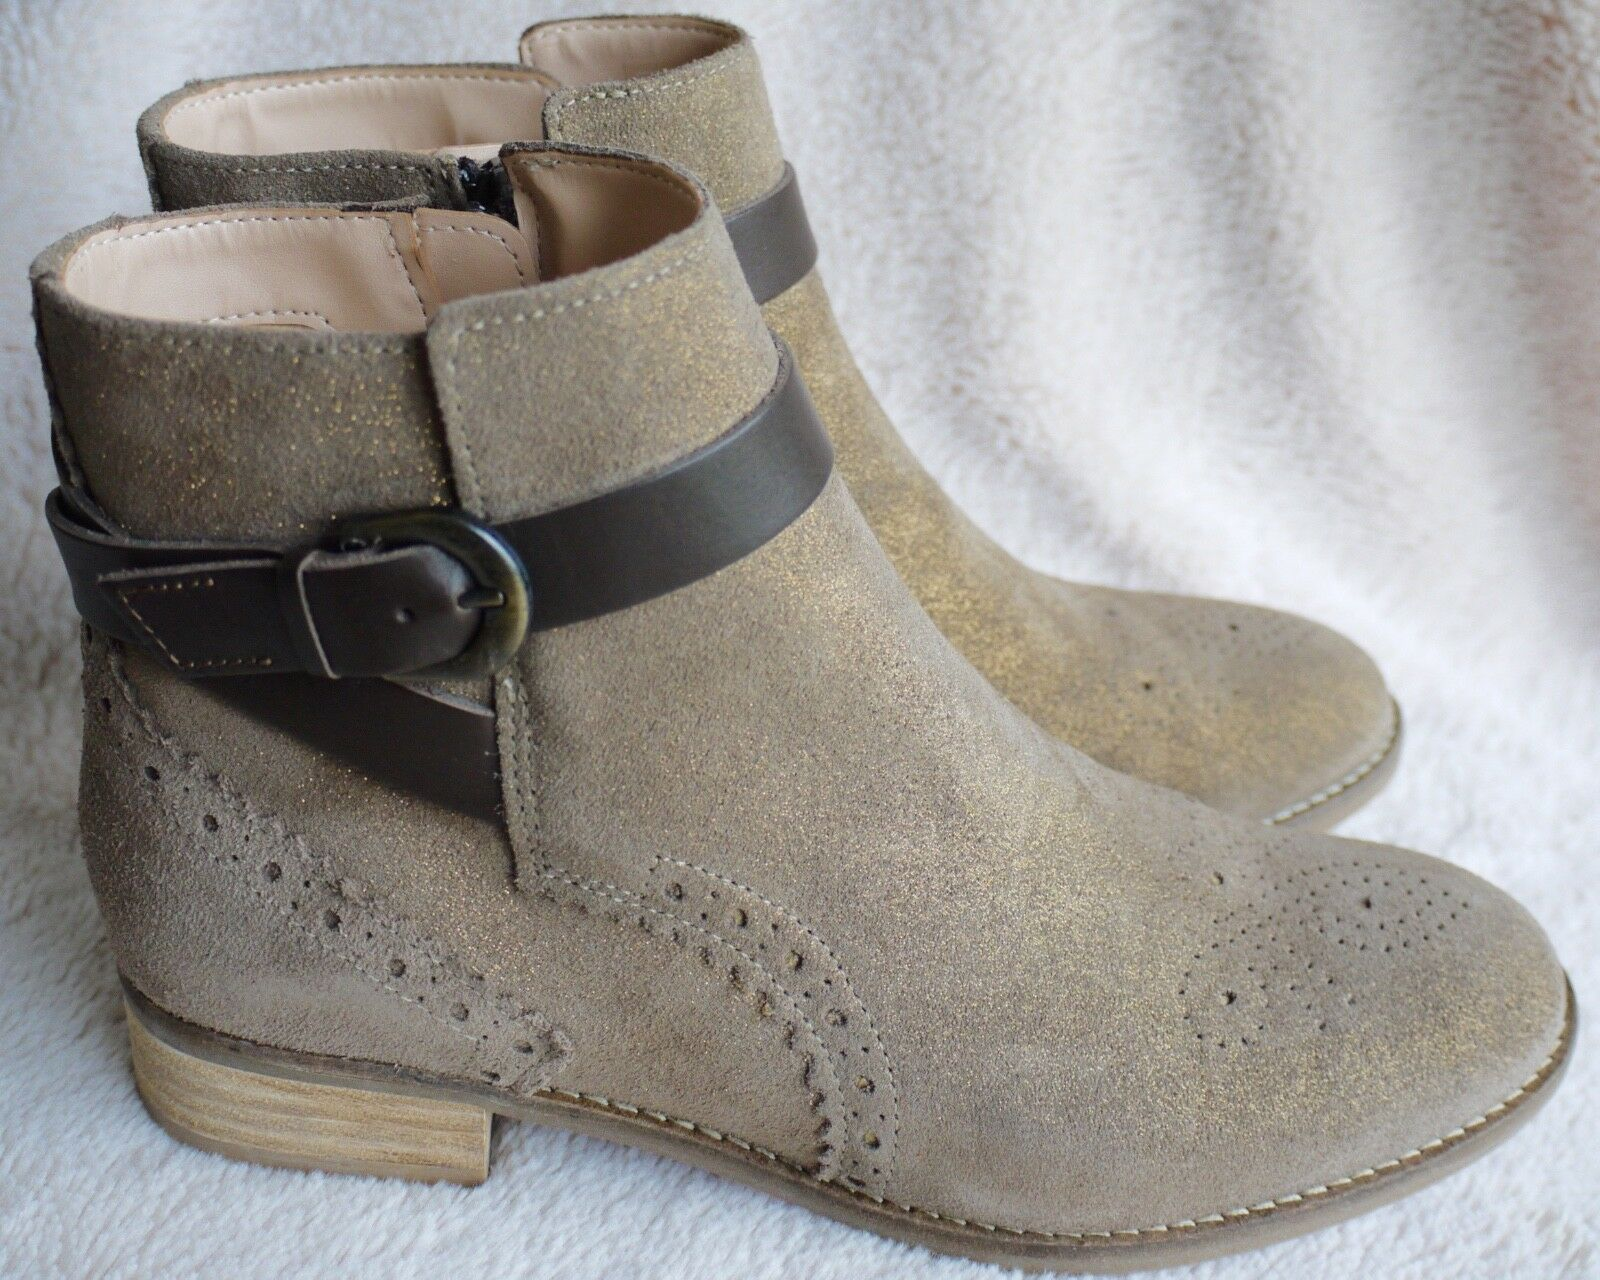 03ecf64294 Clarks Netley Olivia Taupe Suede Ankle BOOTS UK 5.5 EU 39 for sale online |  eBay